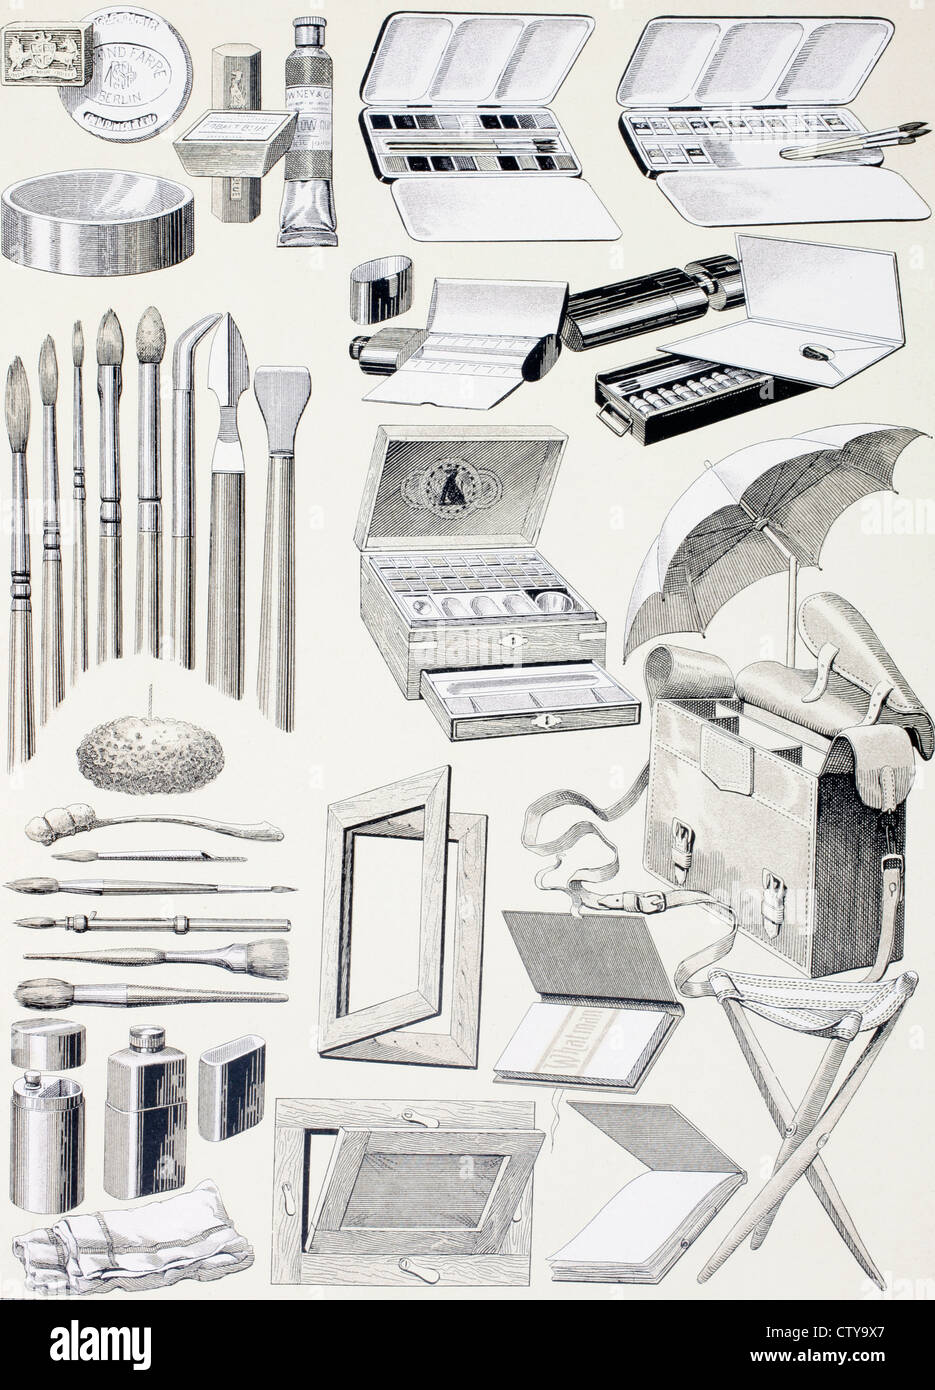 Watercolour tools and supplies. From Enciclopedia Ilustrada Seguí, published Barcelona circa 1910. - Stock Image